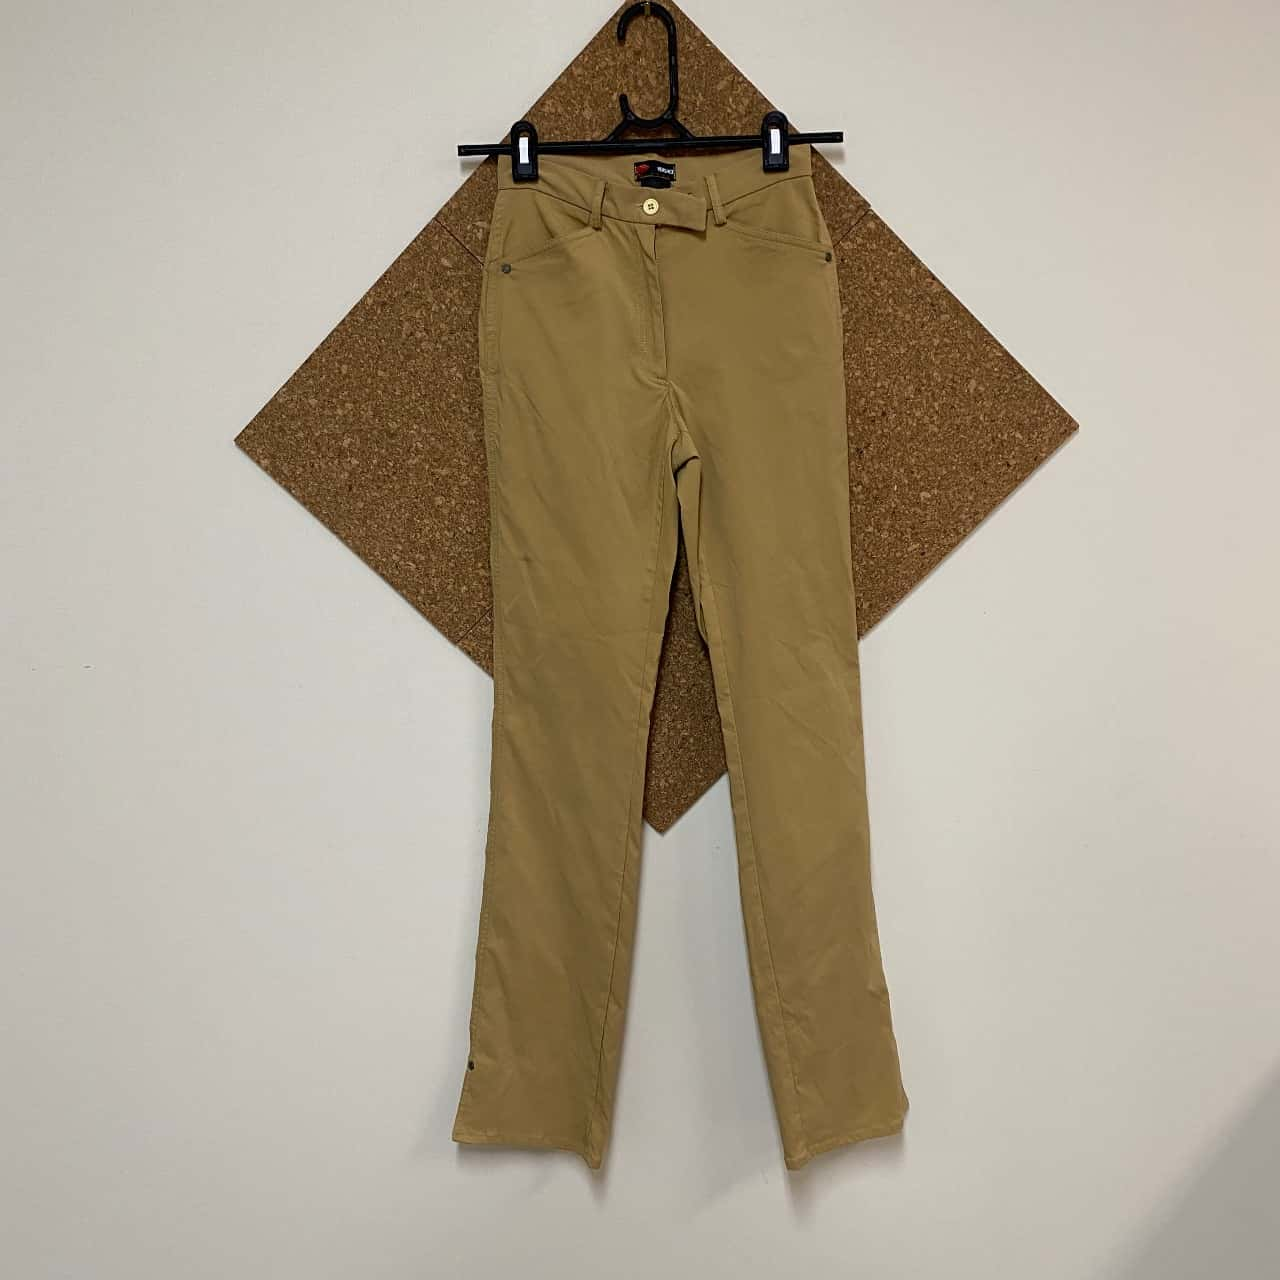 Versace Womens  Size S Long Sleeve Brown Top and Pants